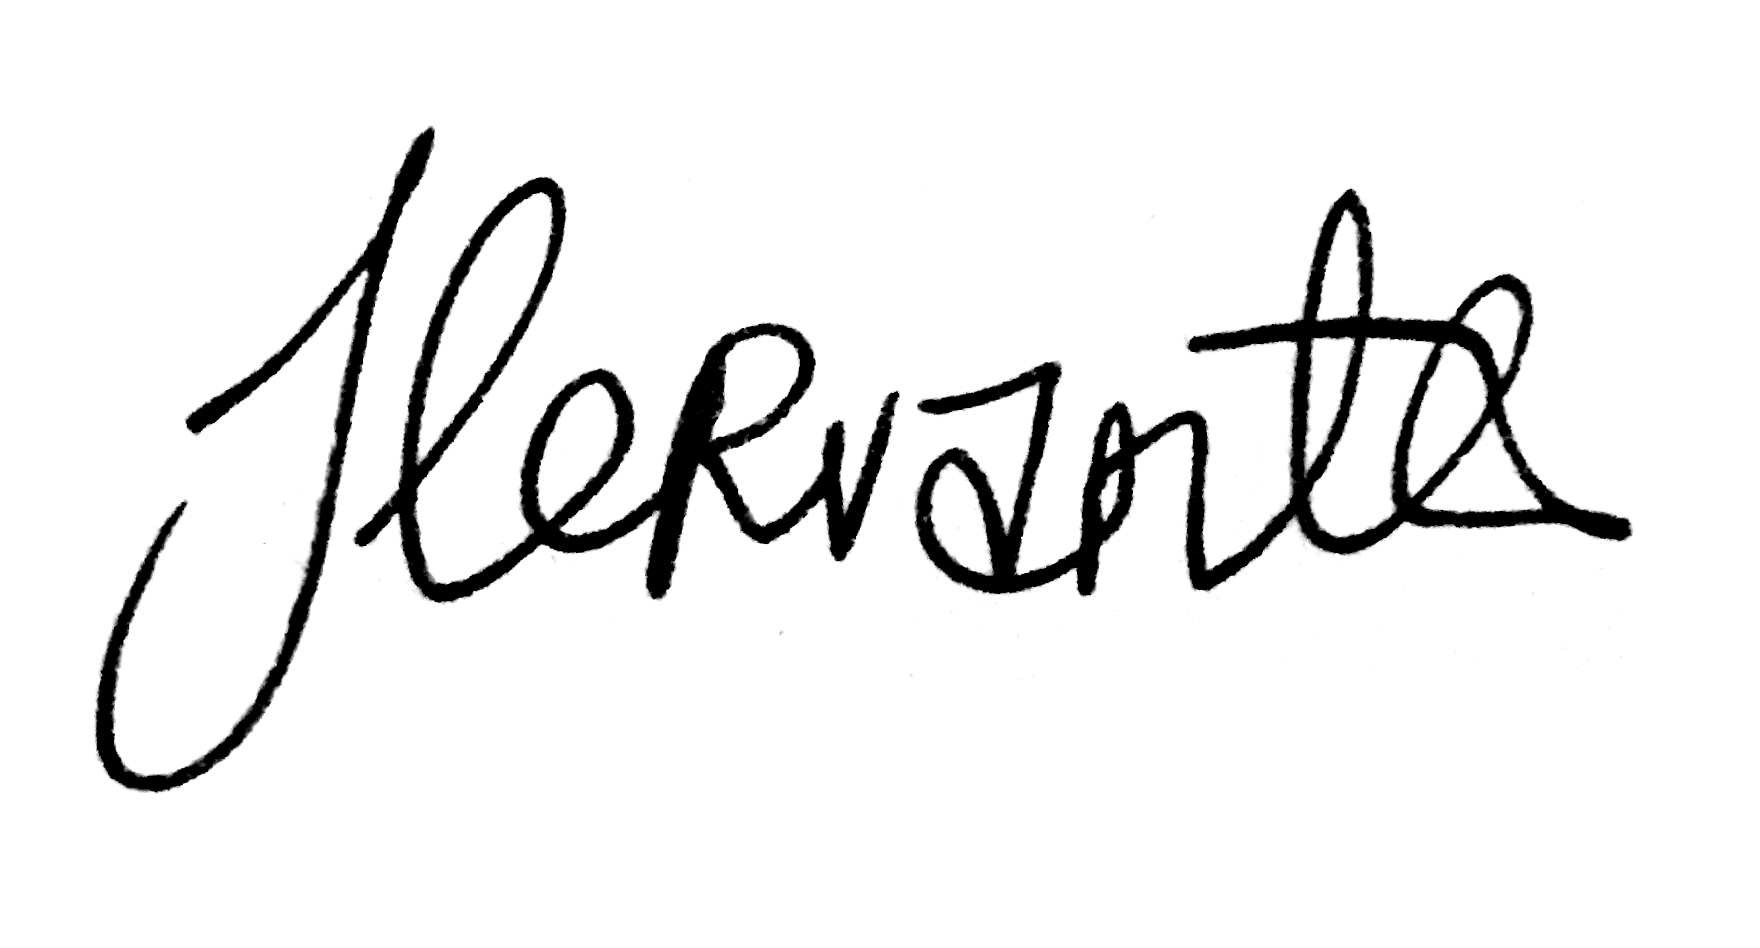 Jeffrey Cervantes's Signature